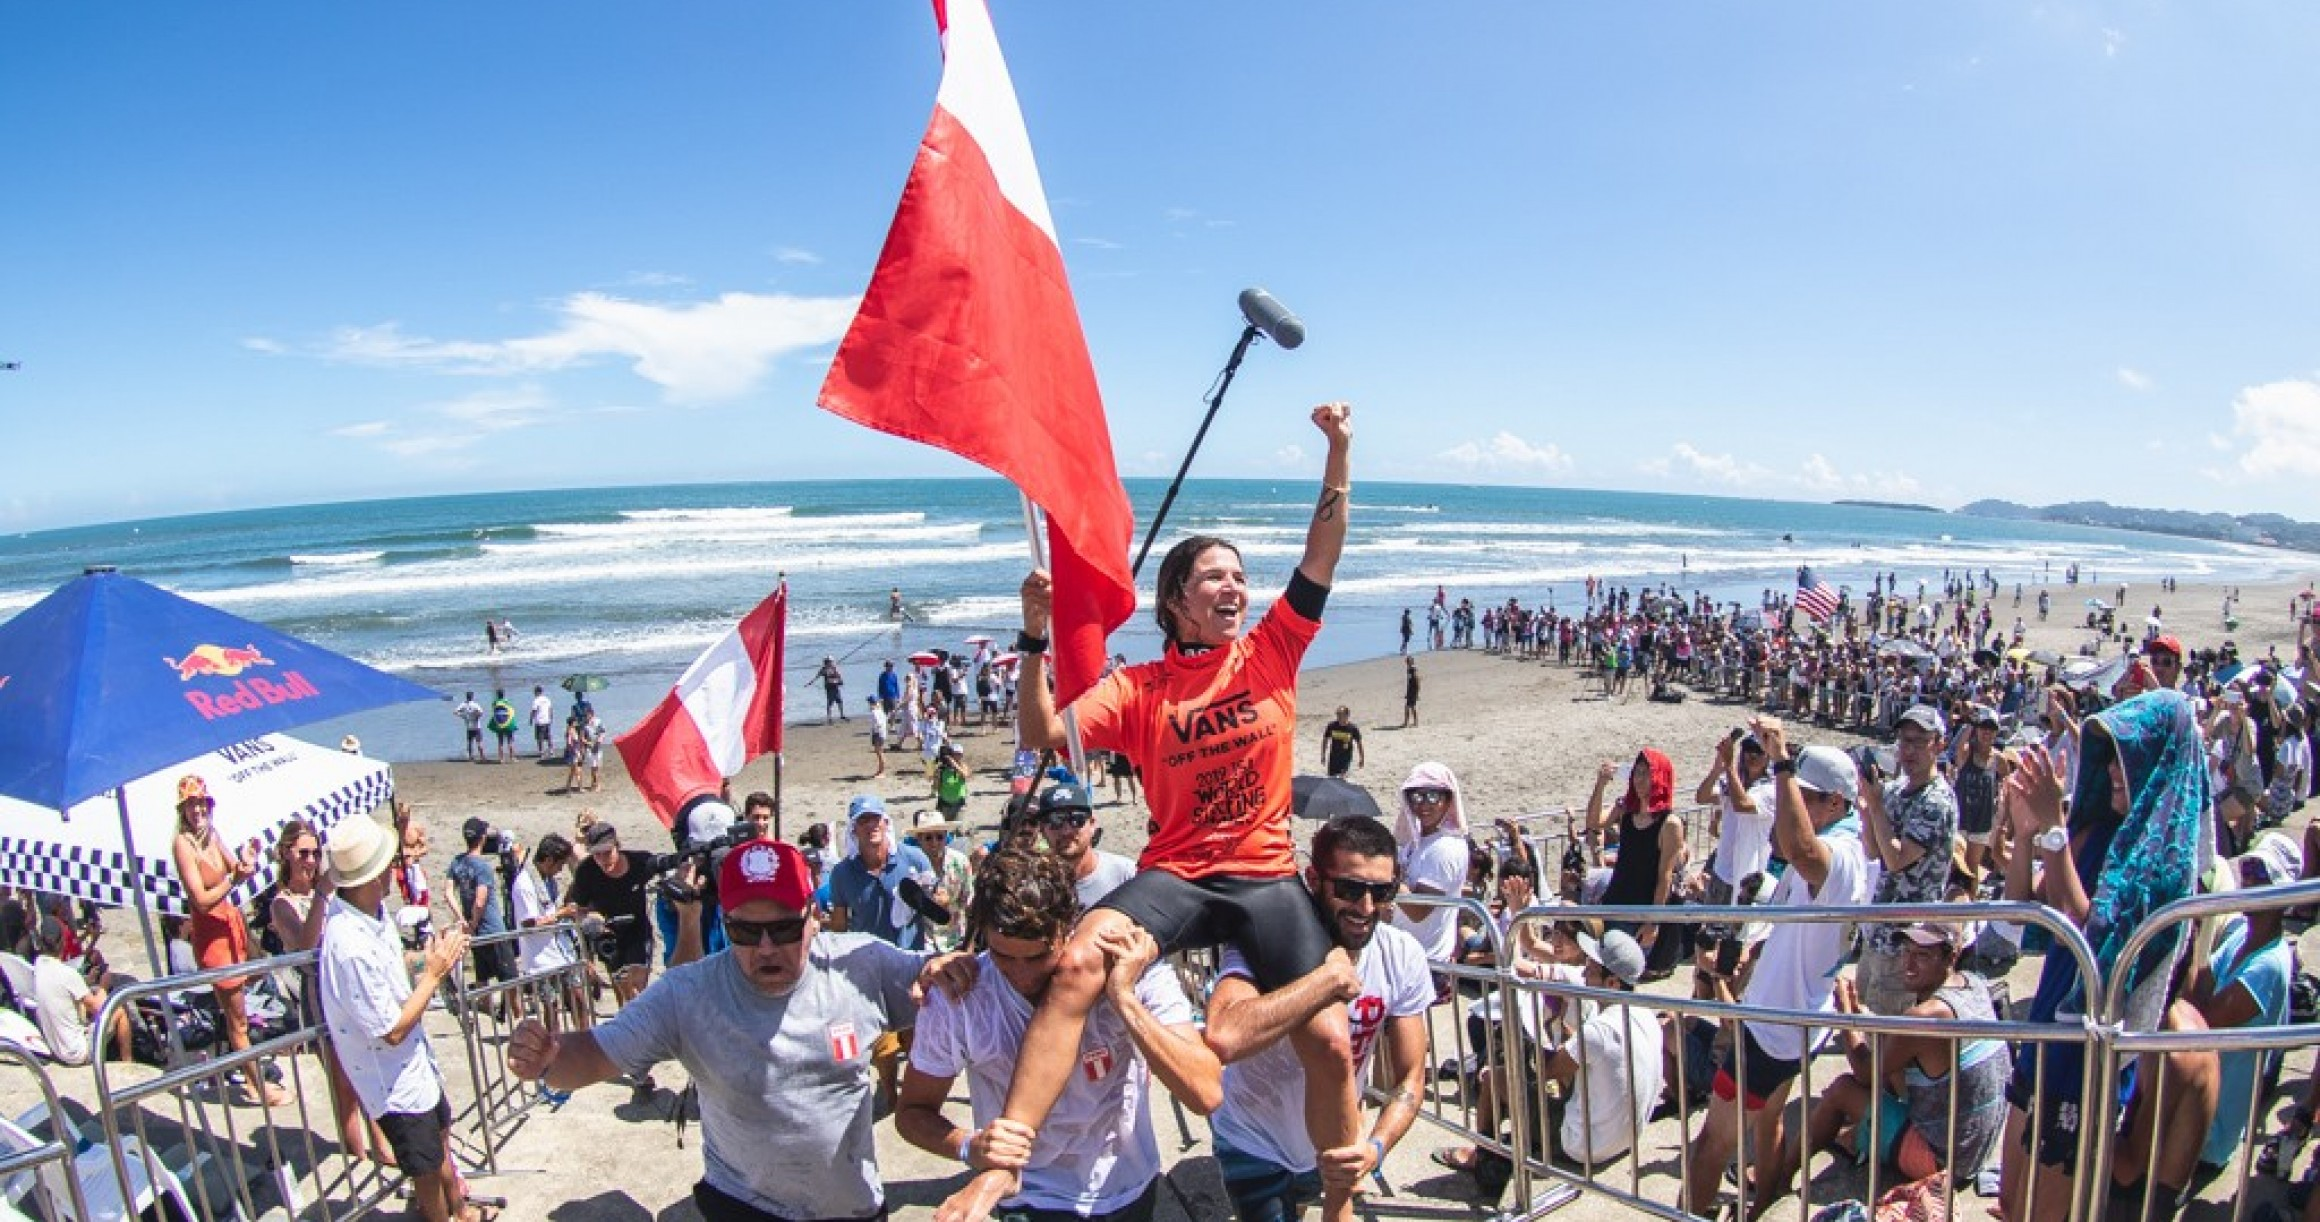 4 Women Provisionally Qualify for Olympics at ISA World Surfing Games Pres by Vans - Magicseaweed.com